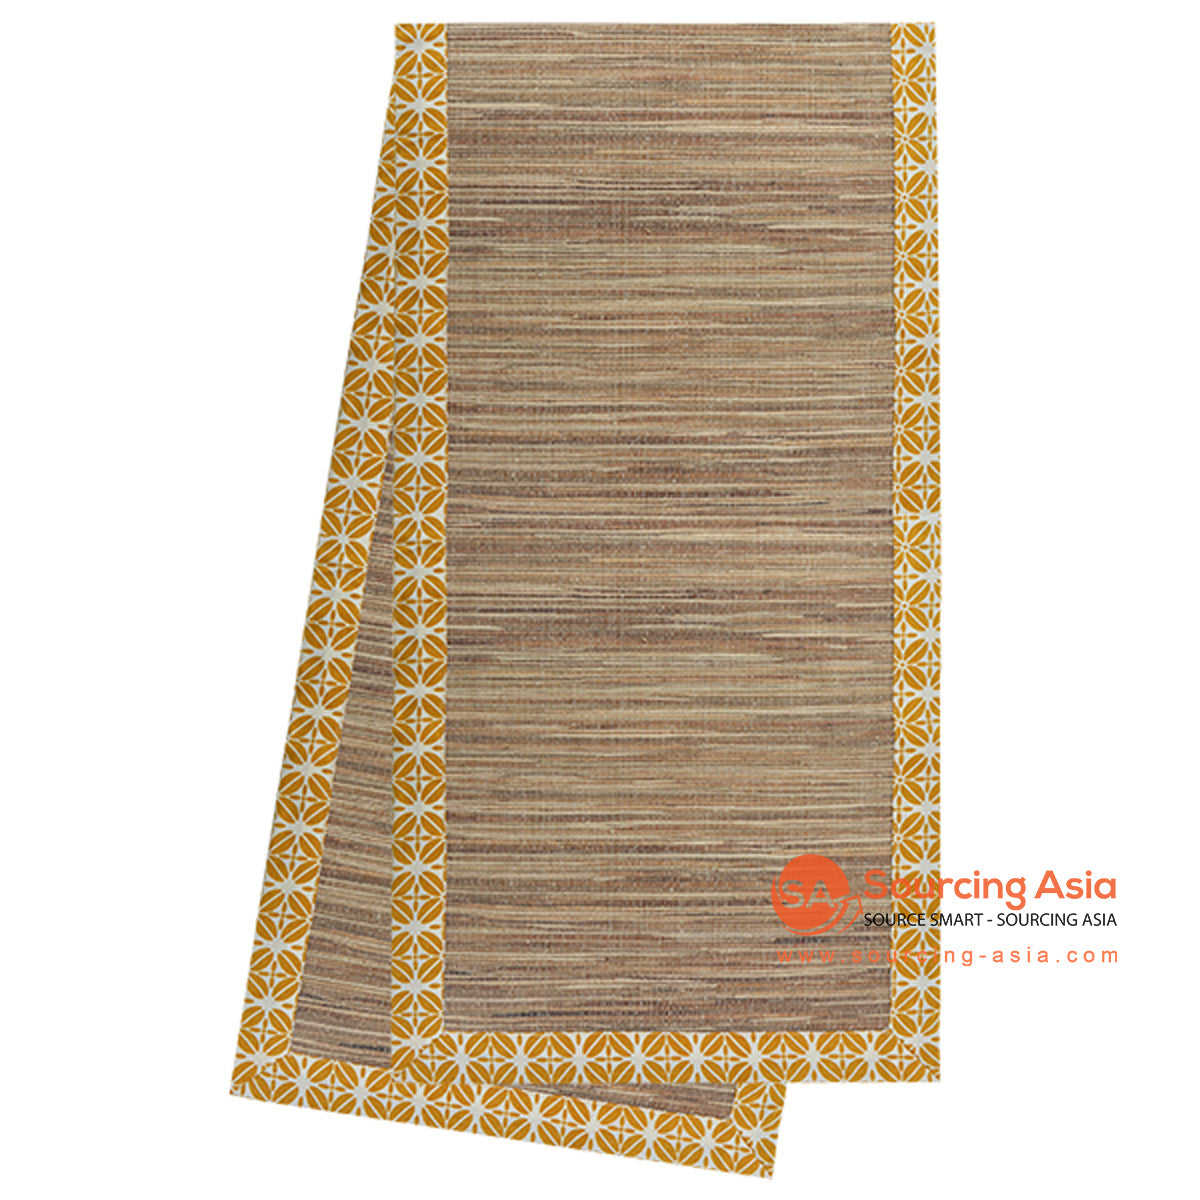 BZN032-3 SANDALWOOD TABLE RUNNER